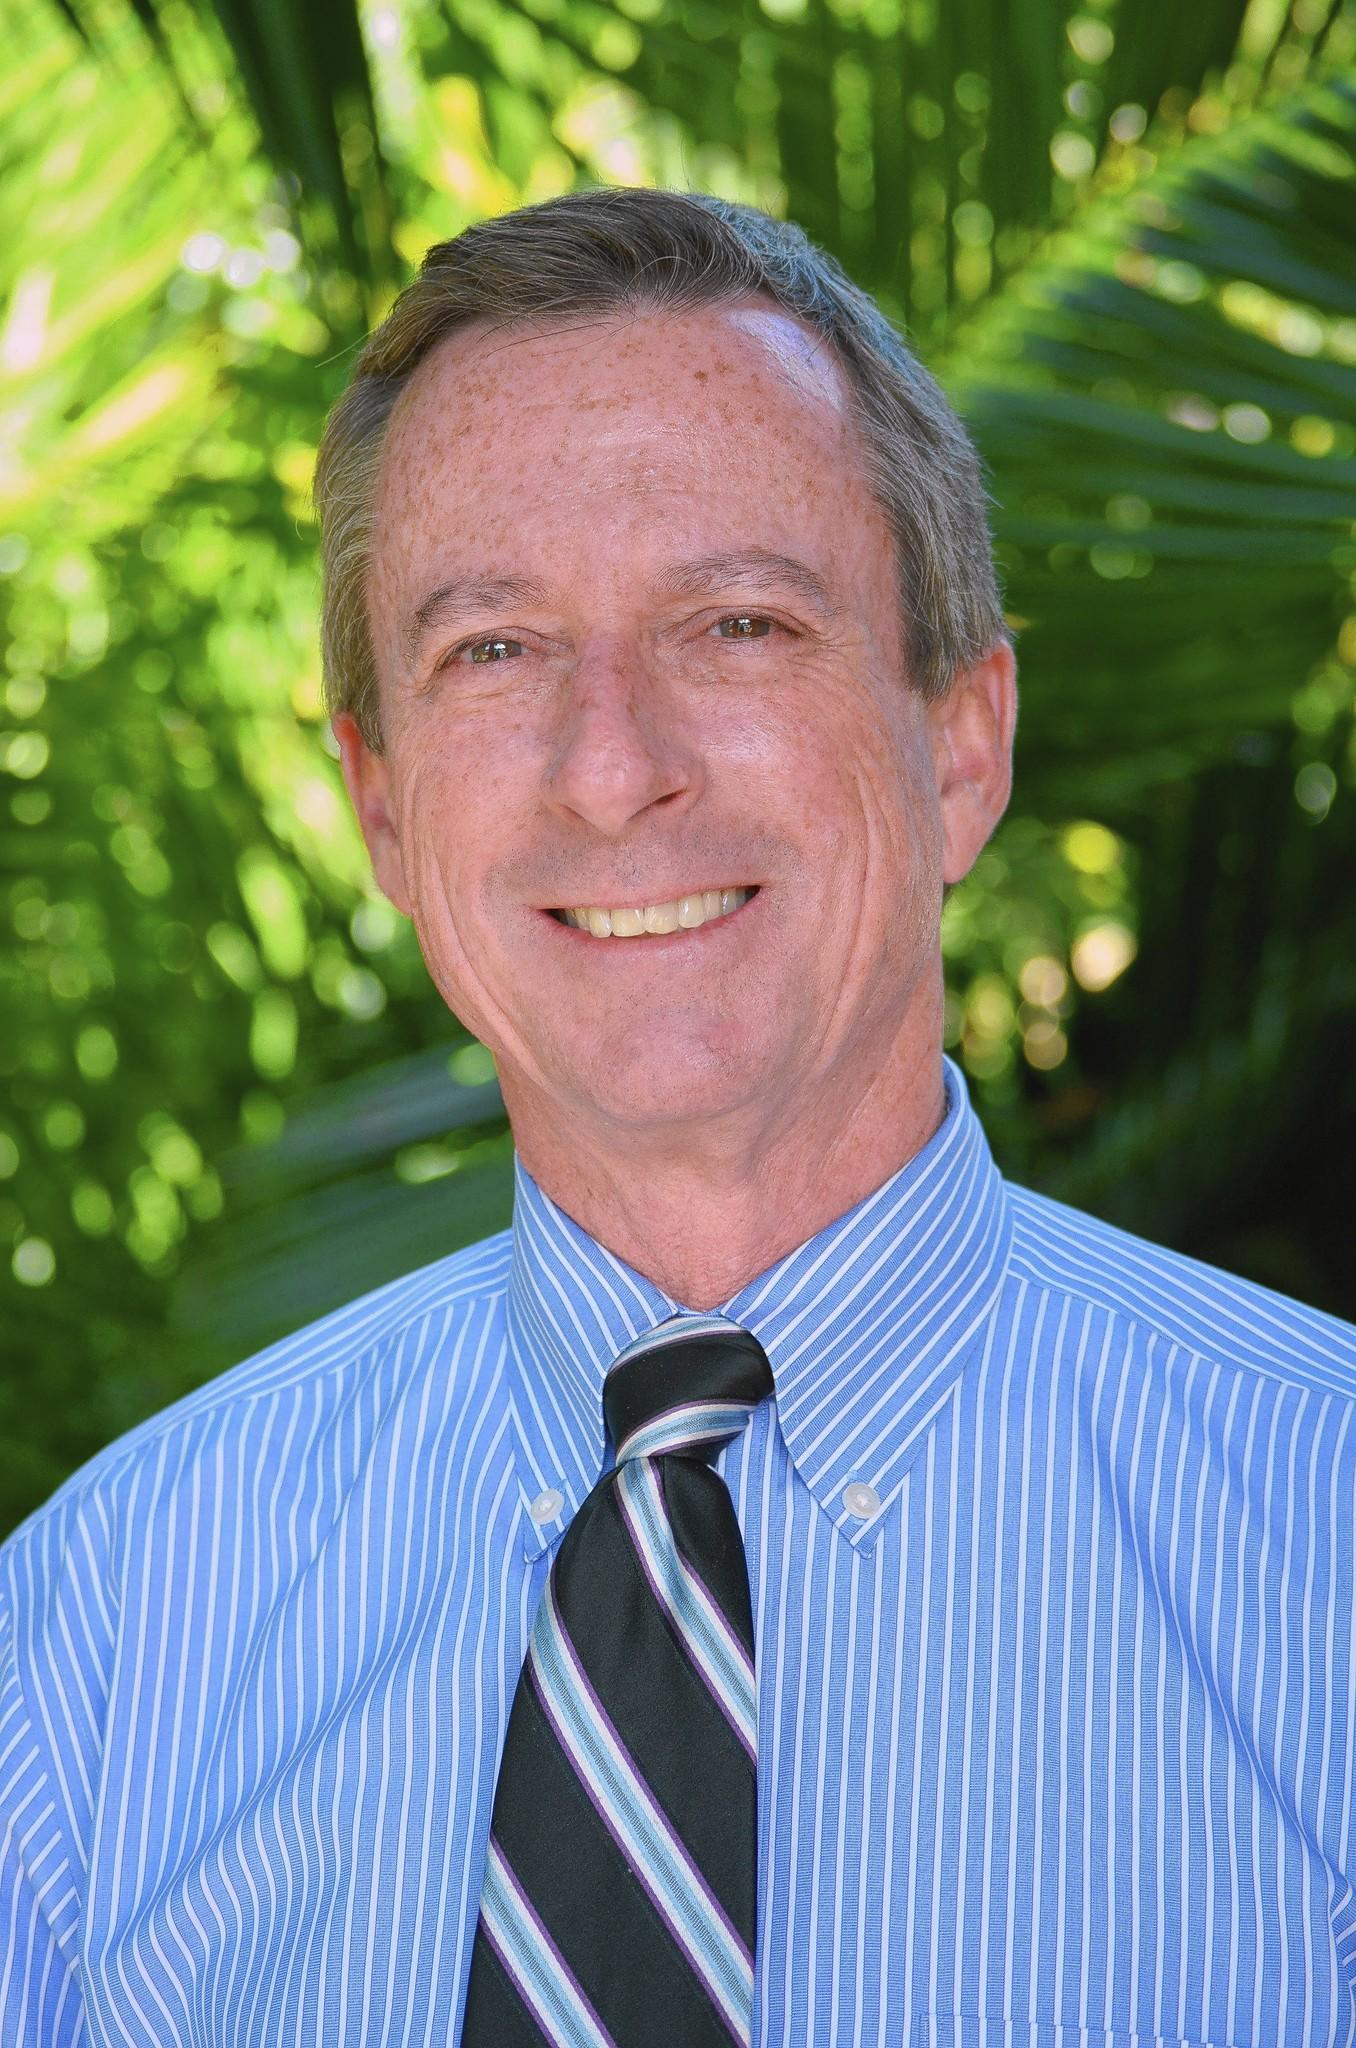 Ron La Motte, who has been principal at Top of the World Elementary School for the past 13 years, is retiring in June to become Concordia University's master's of education program director for the Orange County region.